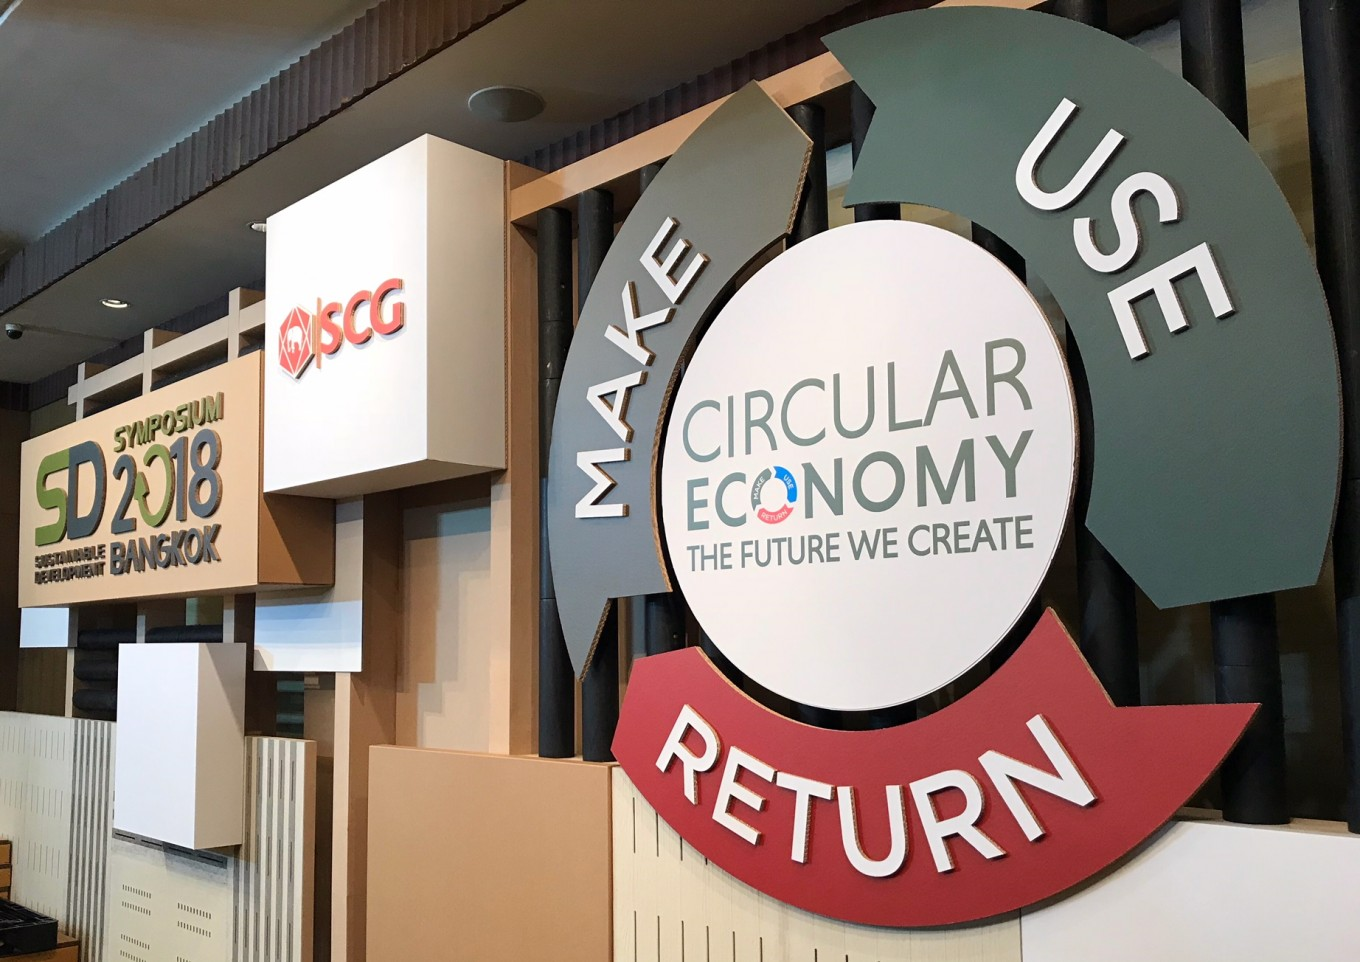 Rethinking impact: Investing in the circular economy to fight climate change